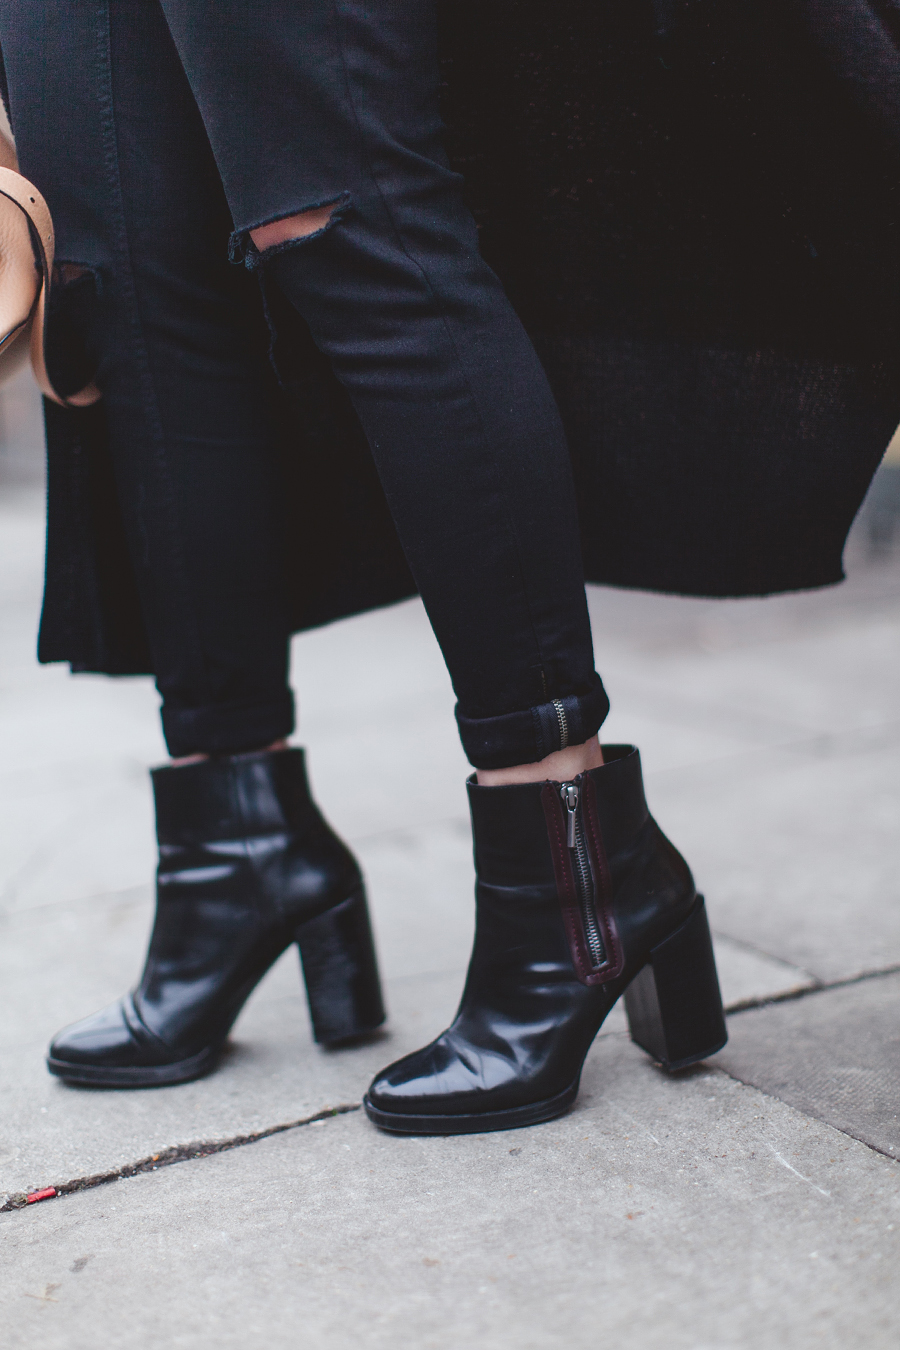 Carrie Harwood is wearing black ankle boots with a burgundy zipper from Zara